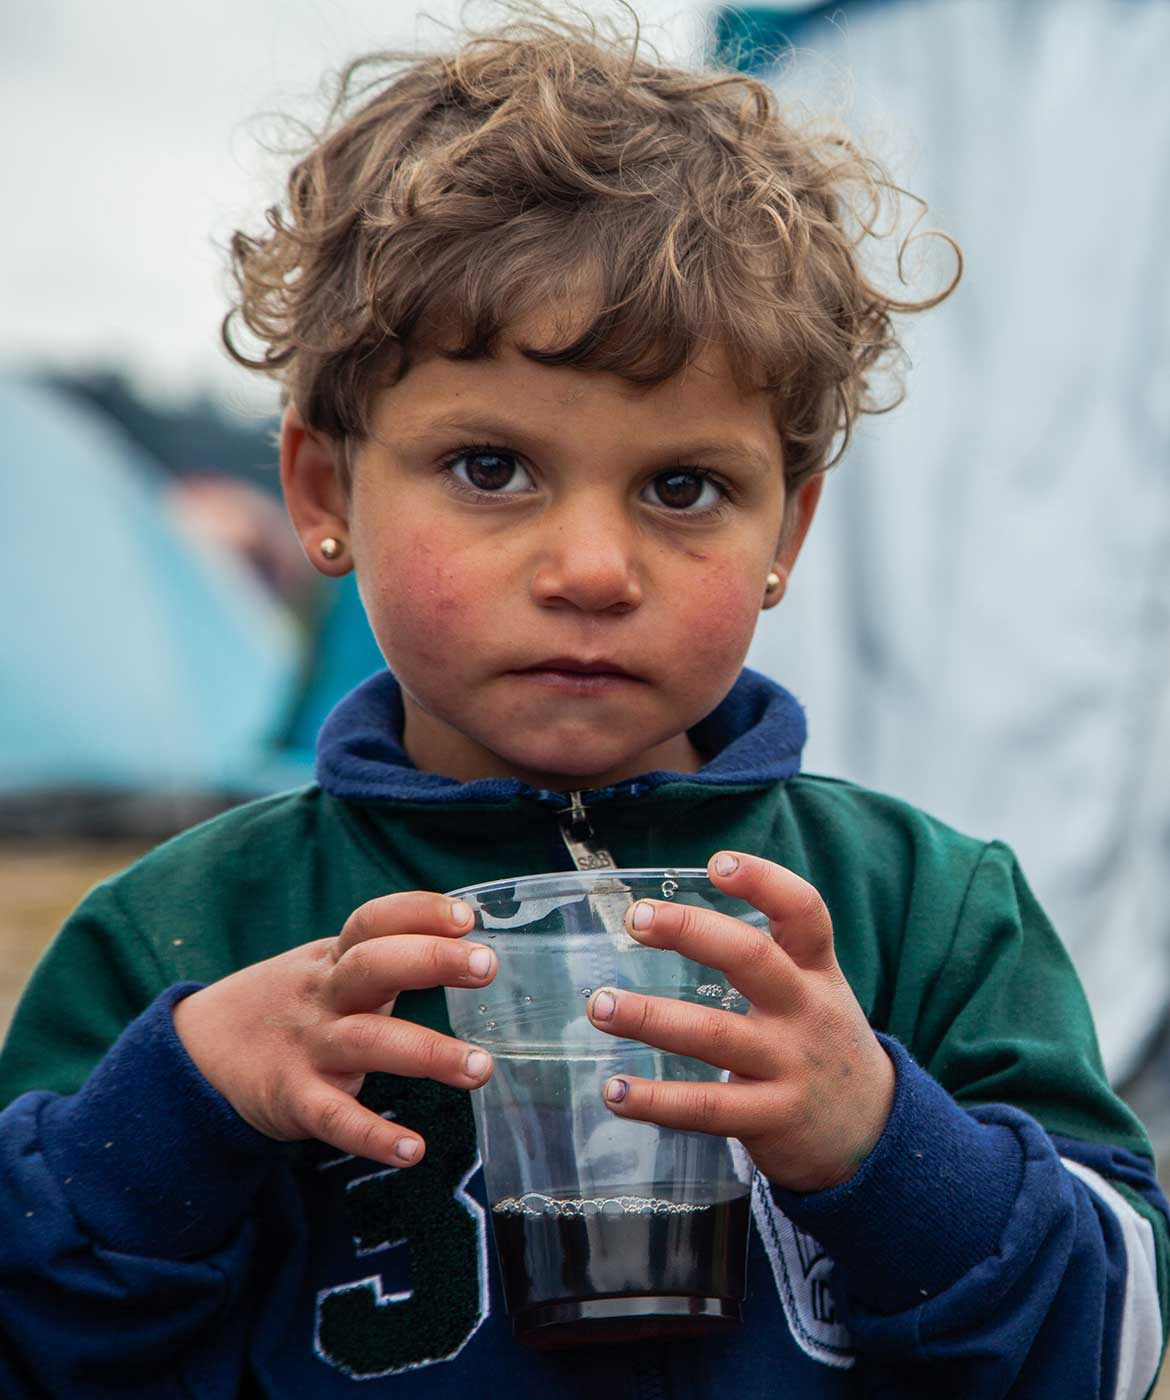 Three year old Lama warms her fingers with a cup of tea. Her family fled their home in Syria but were stranded at the border in Greece for several weeks.